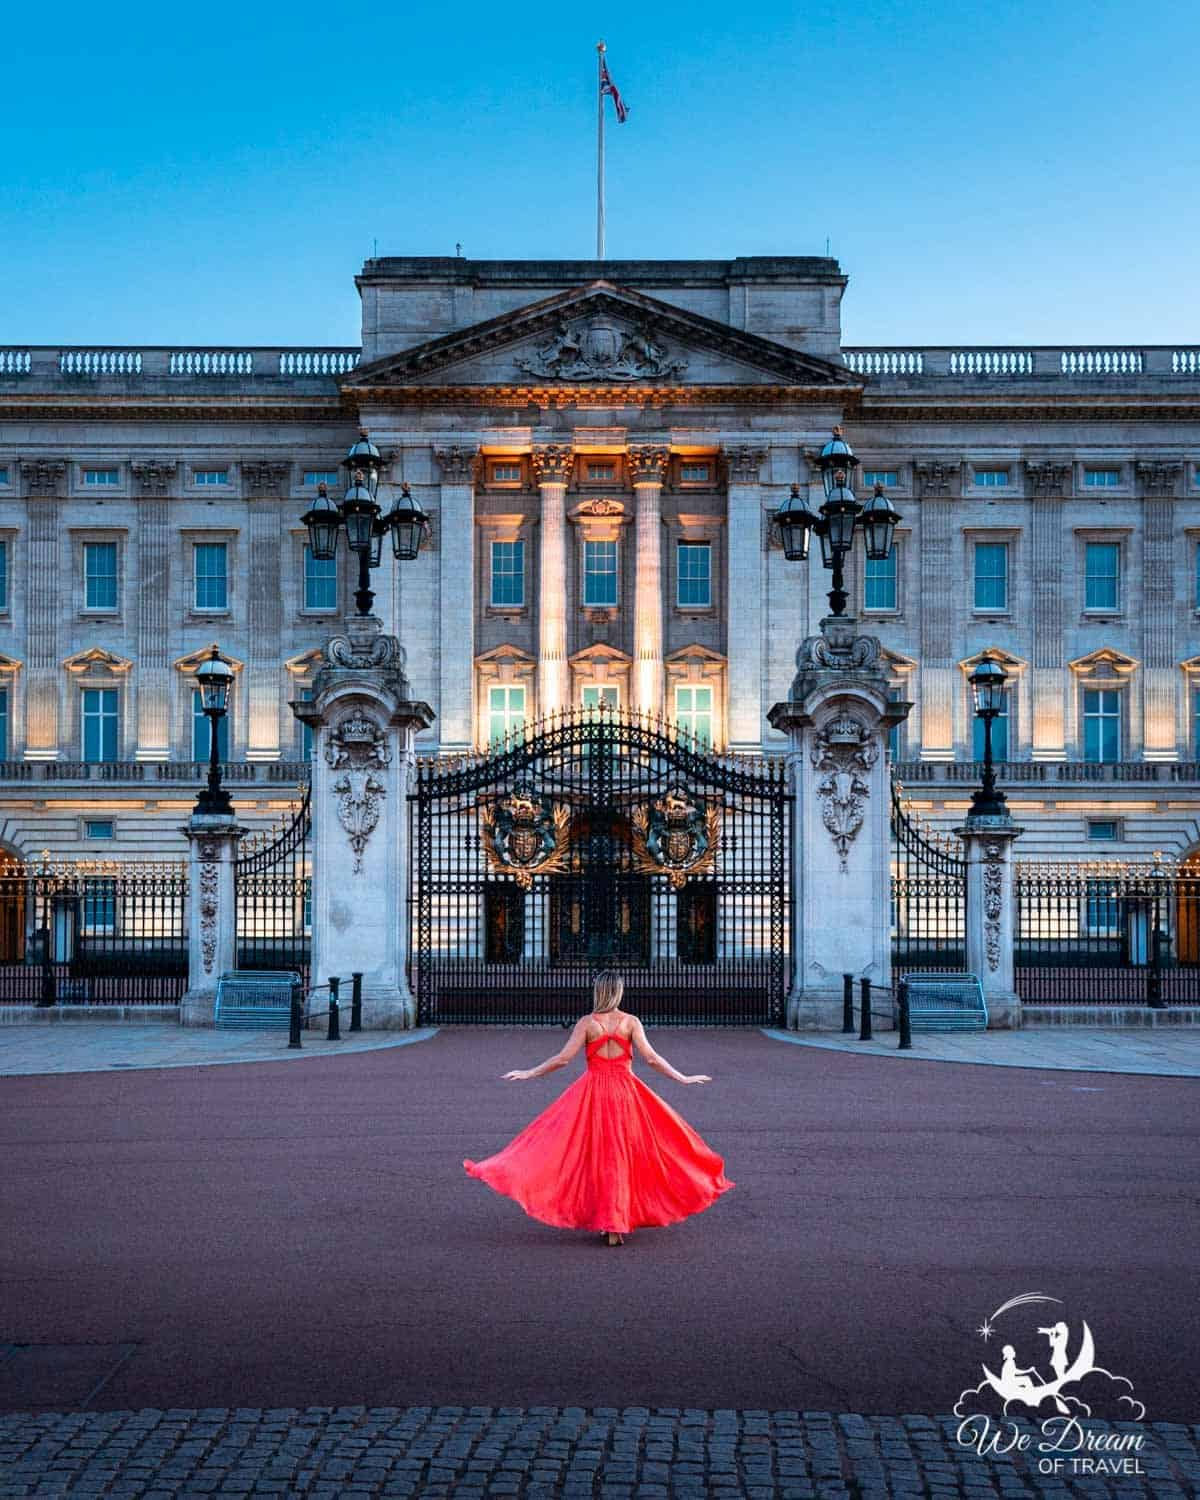 Pretending to be a princess in front of Buckingham Palace London